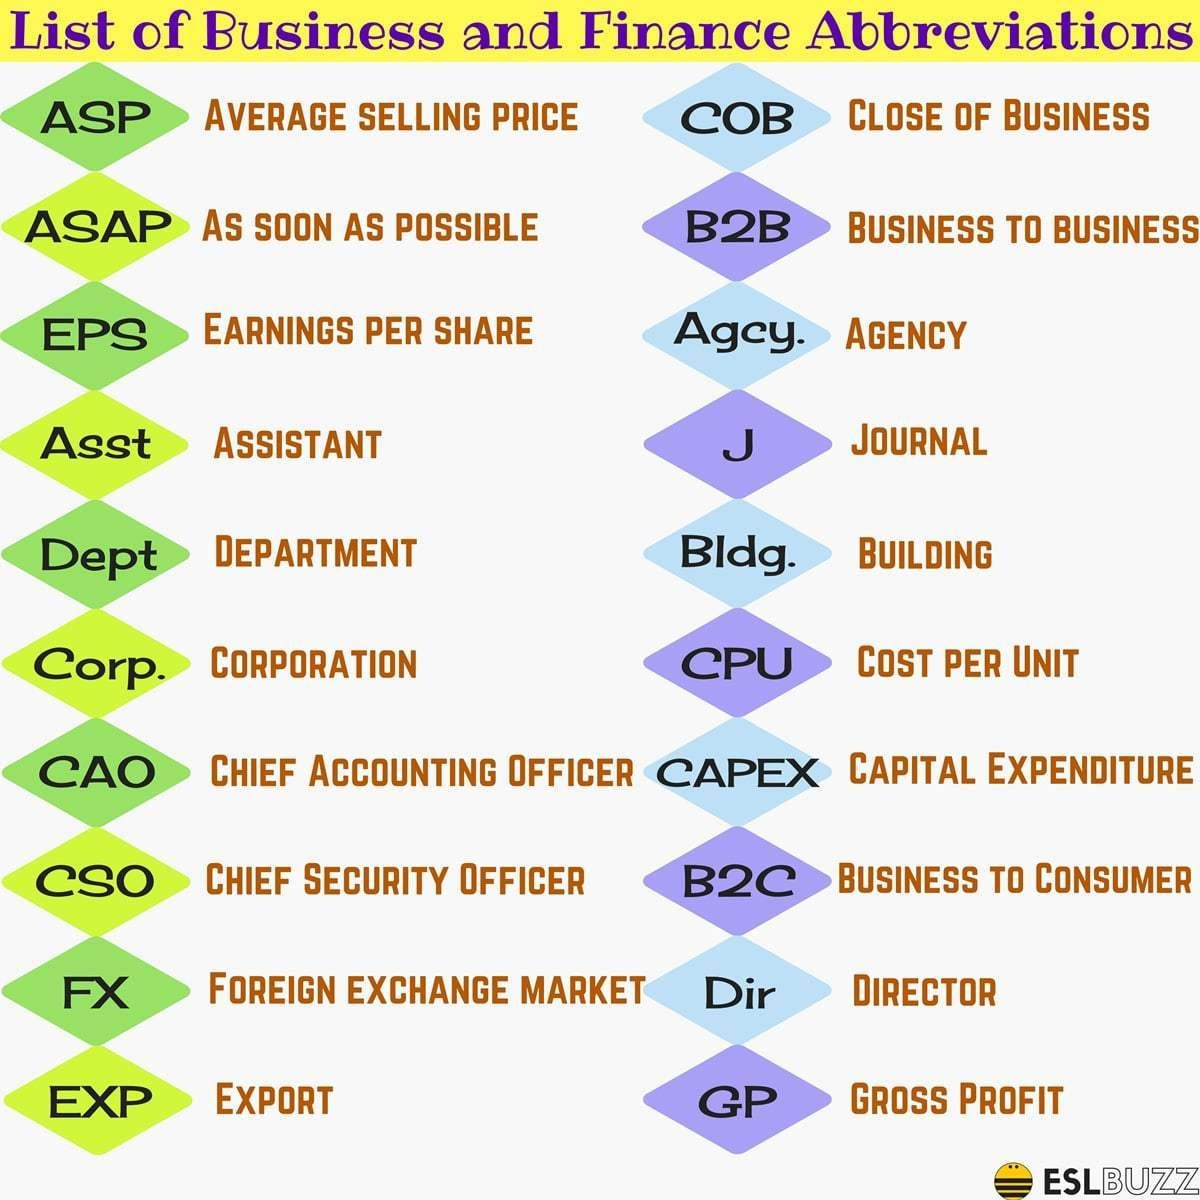 Financial Abbreviations Business Acronyms And Finance